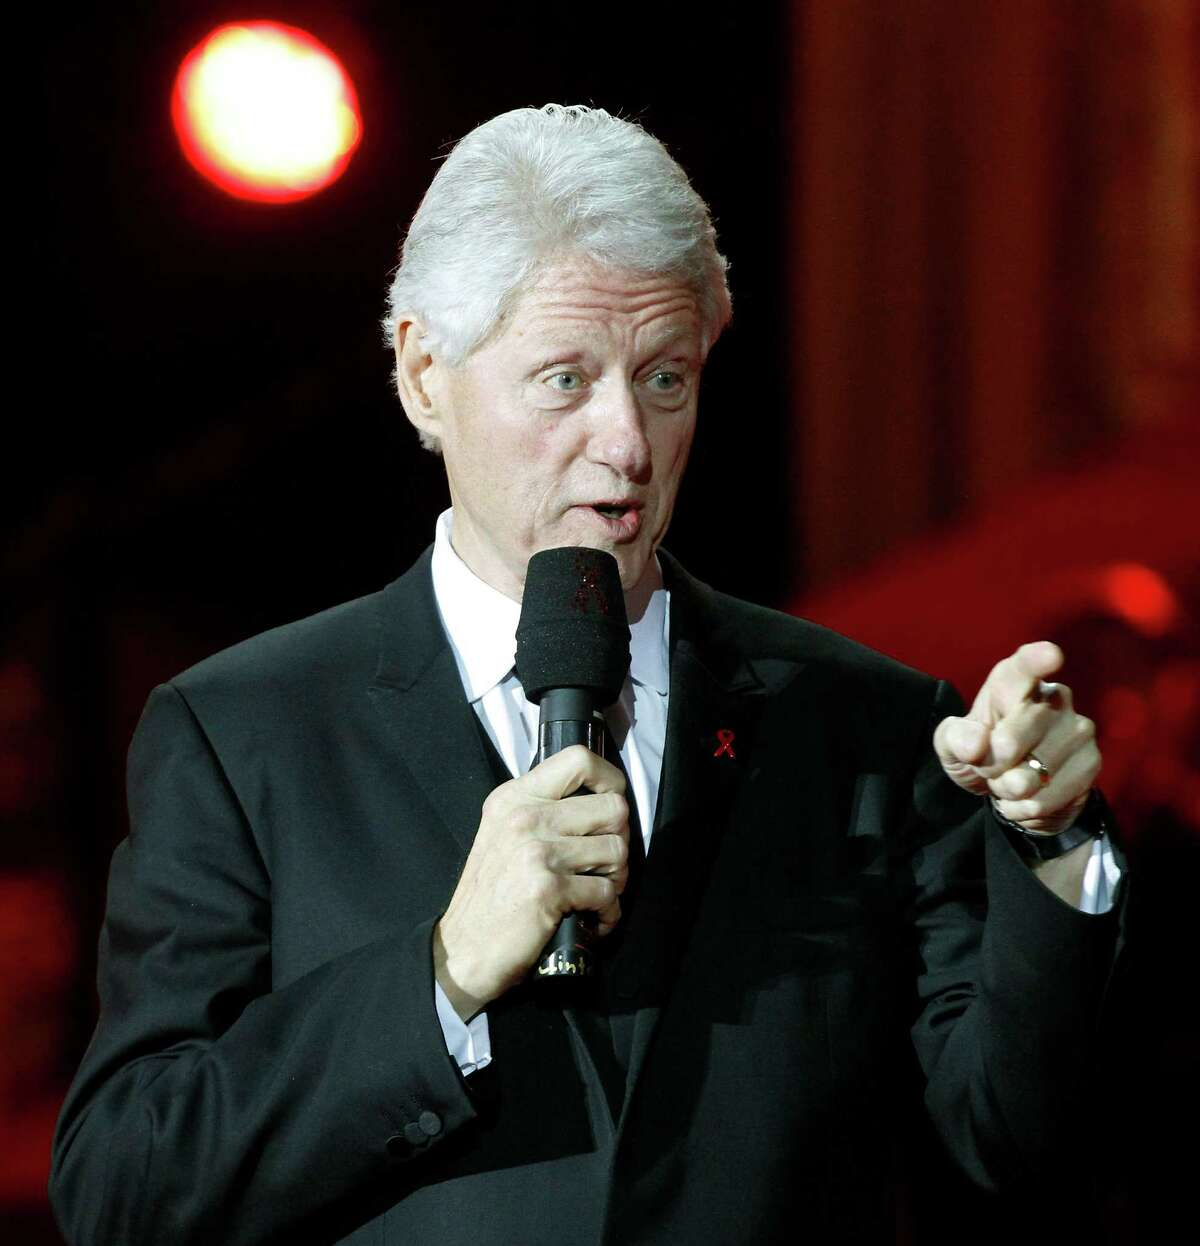 Former U.S. President Bill Clinton delivers a speech during the opening ceremony of the 20th Life Ball in front of the city hall in Vienna, Austria, on Saturday, May 19, 2012. The Life Ball is a charity gala to raise money for people living with HIV and AIDS.